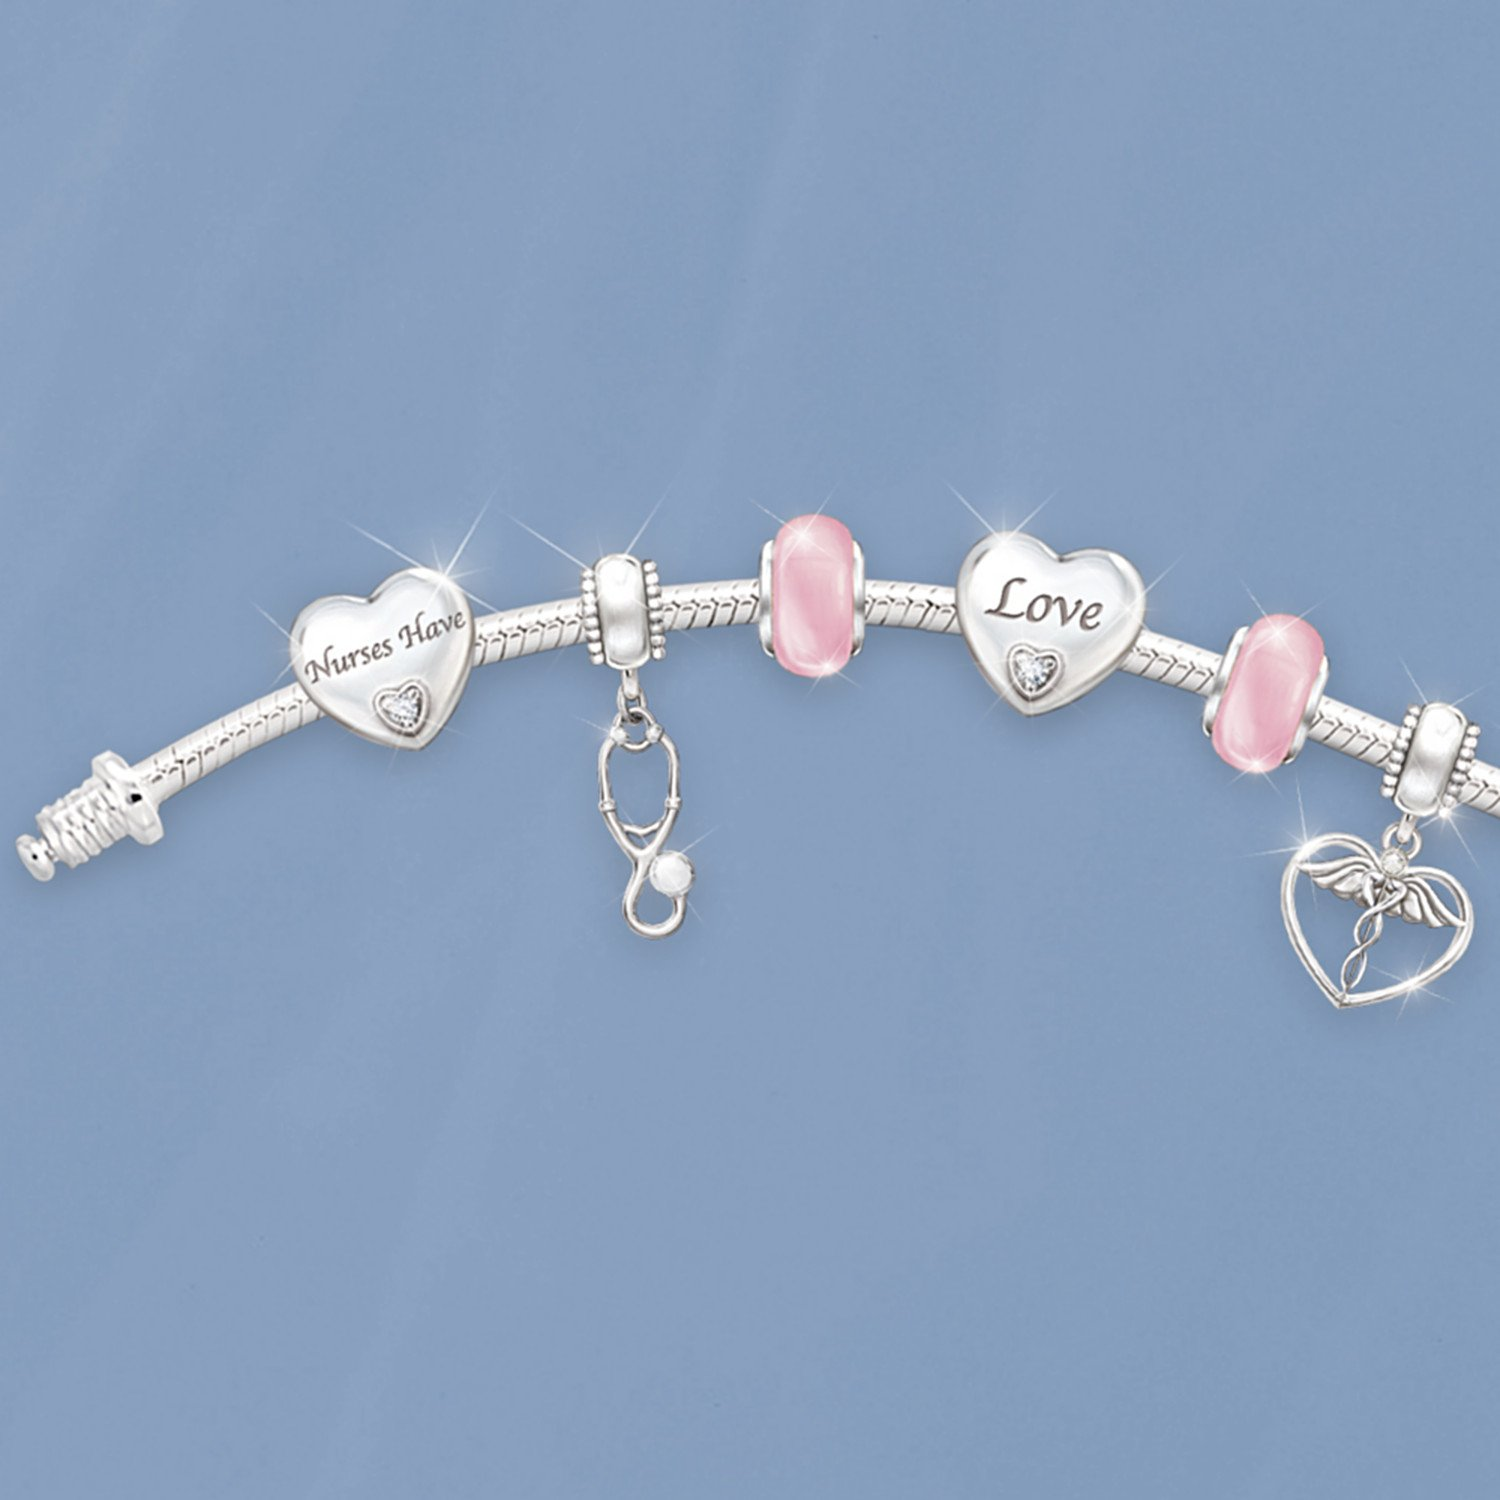 A Nurse's Heart Charm Bracelet by The Bradford Exchange by Bradford Exchange (Image #3)